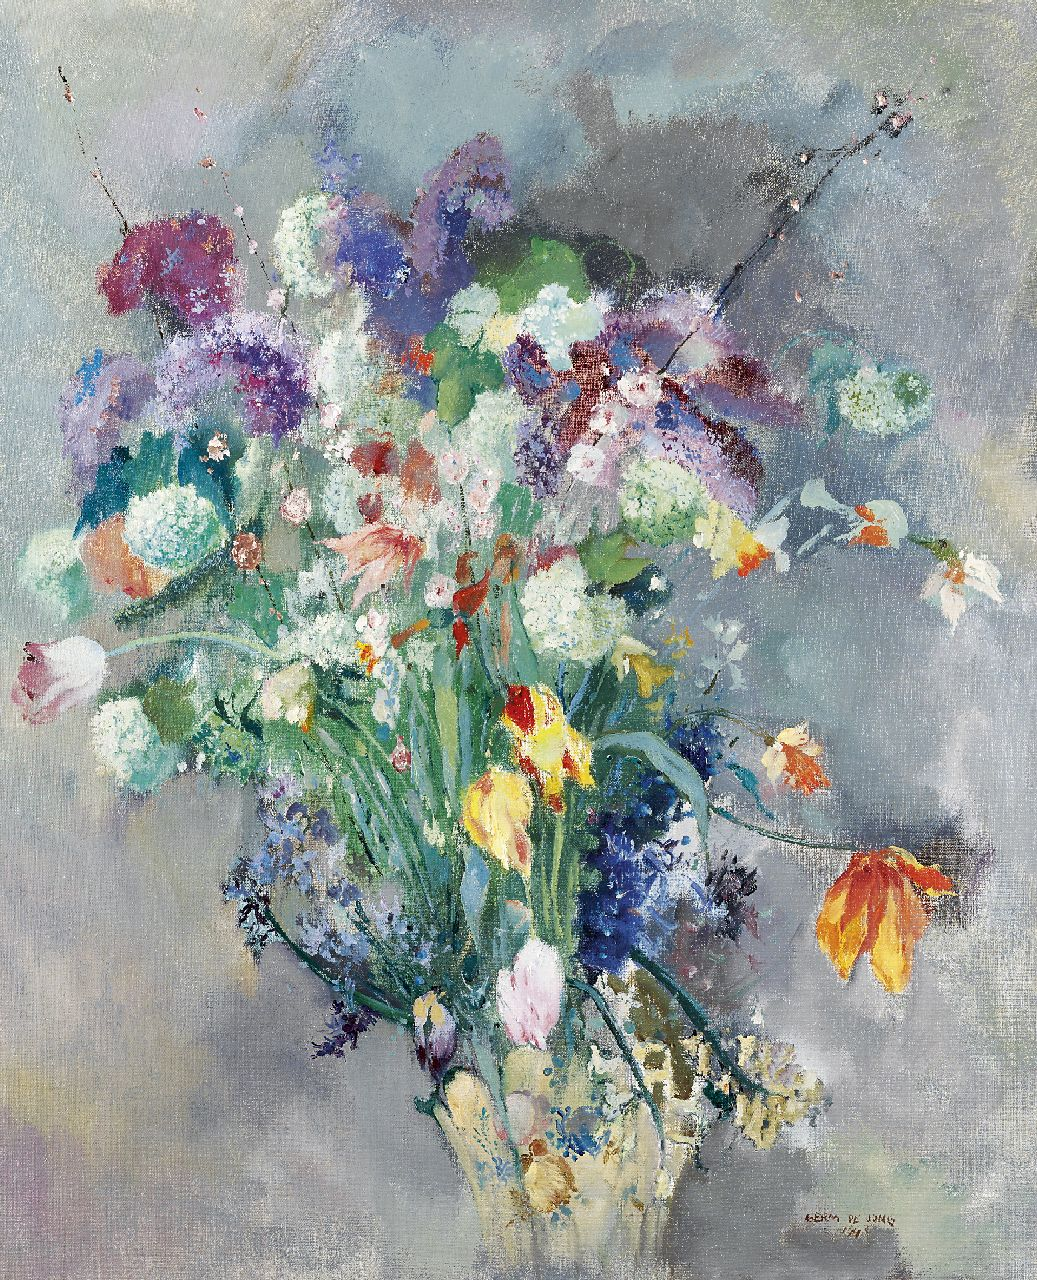 Jong G. de | Gerben 'Germ' de Jong, Spring flowers, oil on canvas 81.4 x 65.4 cm, signed l.r. and dated 1943